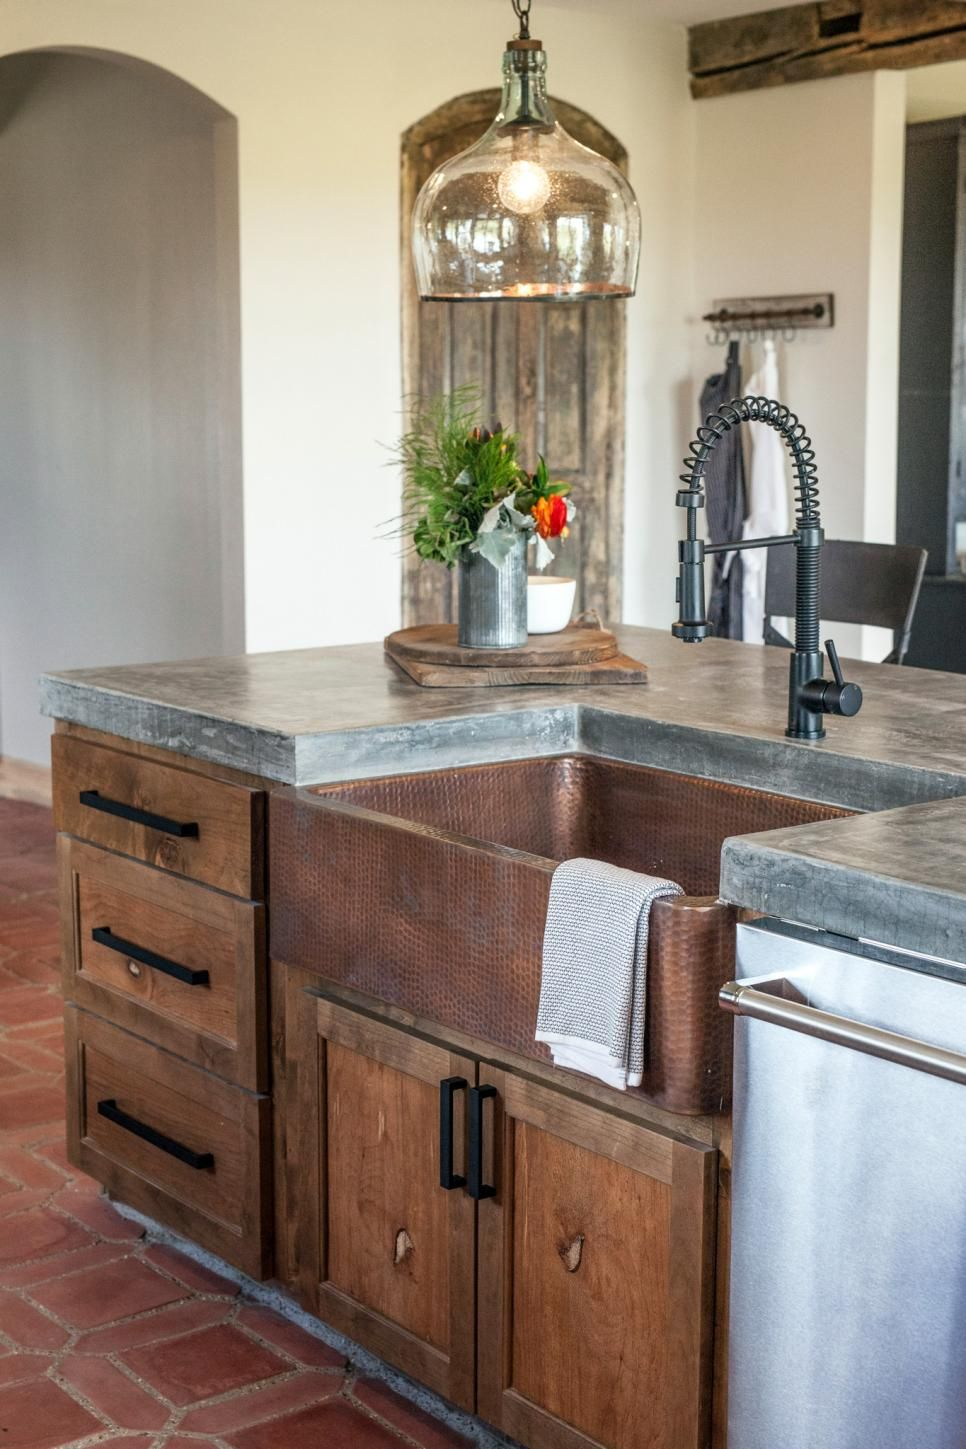 Fixer upper modern kitchen - Counter Tops